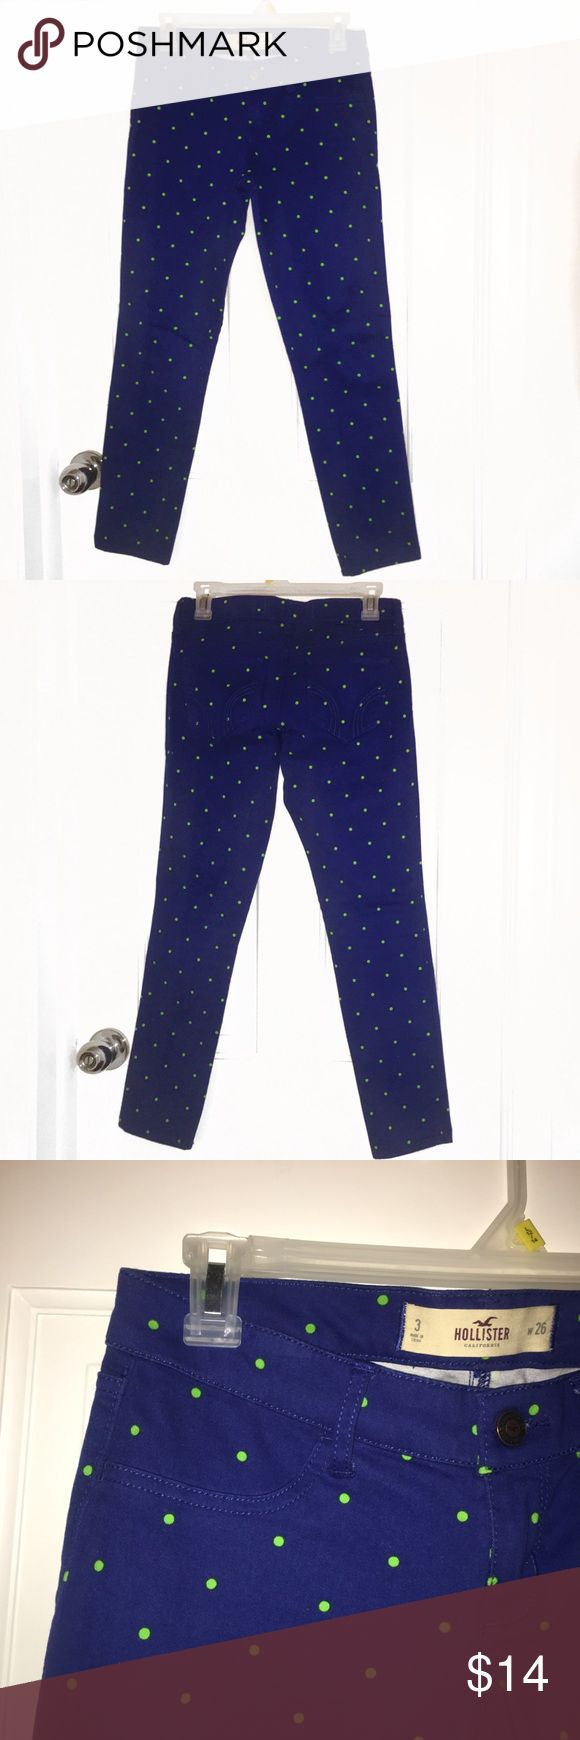 "Hollister Polka Dot Jeggings ‼️BUNDLE & SAVE‼️*add to dressing room bundle & expect a private offer! Hollister Polka Dot Jeggings -Stretchy, Front ""pockets"" do not open (see 6th pic) -Pants are a Dark Blue with Lime Polka Dots -NEVER WORN, PERFECT CONDITION 🚬Smoke free environment 💸Price is negotiable, MAKE AN OFFER! 👇➖➖➖➖➖➖➖➖➖➖➖➖👇 •Additional pictures upon request •Pls ask ALL questions prior to purchasing •Offers via ""offer"" button only •No trades, no holds, no ""lowest?"" Hollister…"